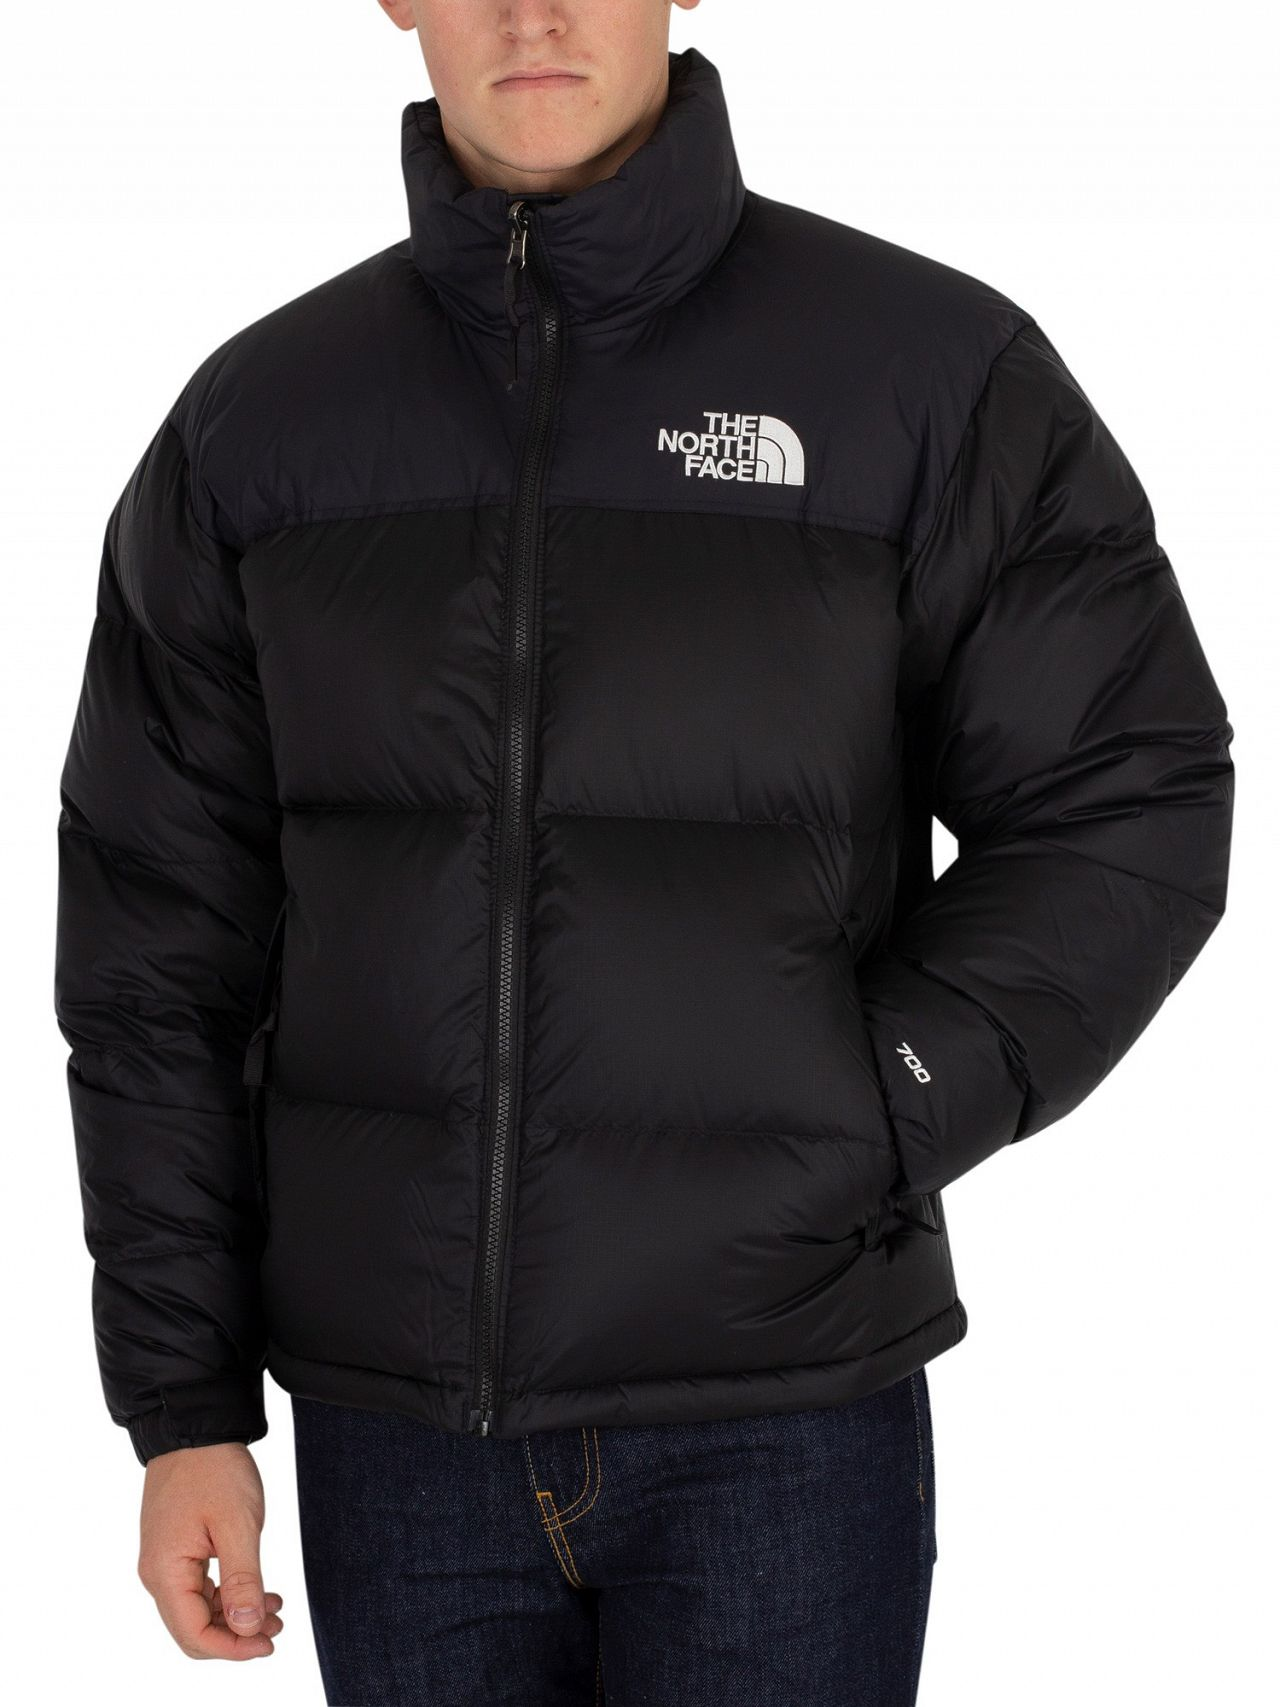 01e763a8f The North Face Black 1996 Retro Nuptse Jacket